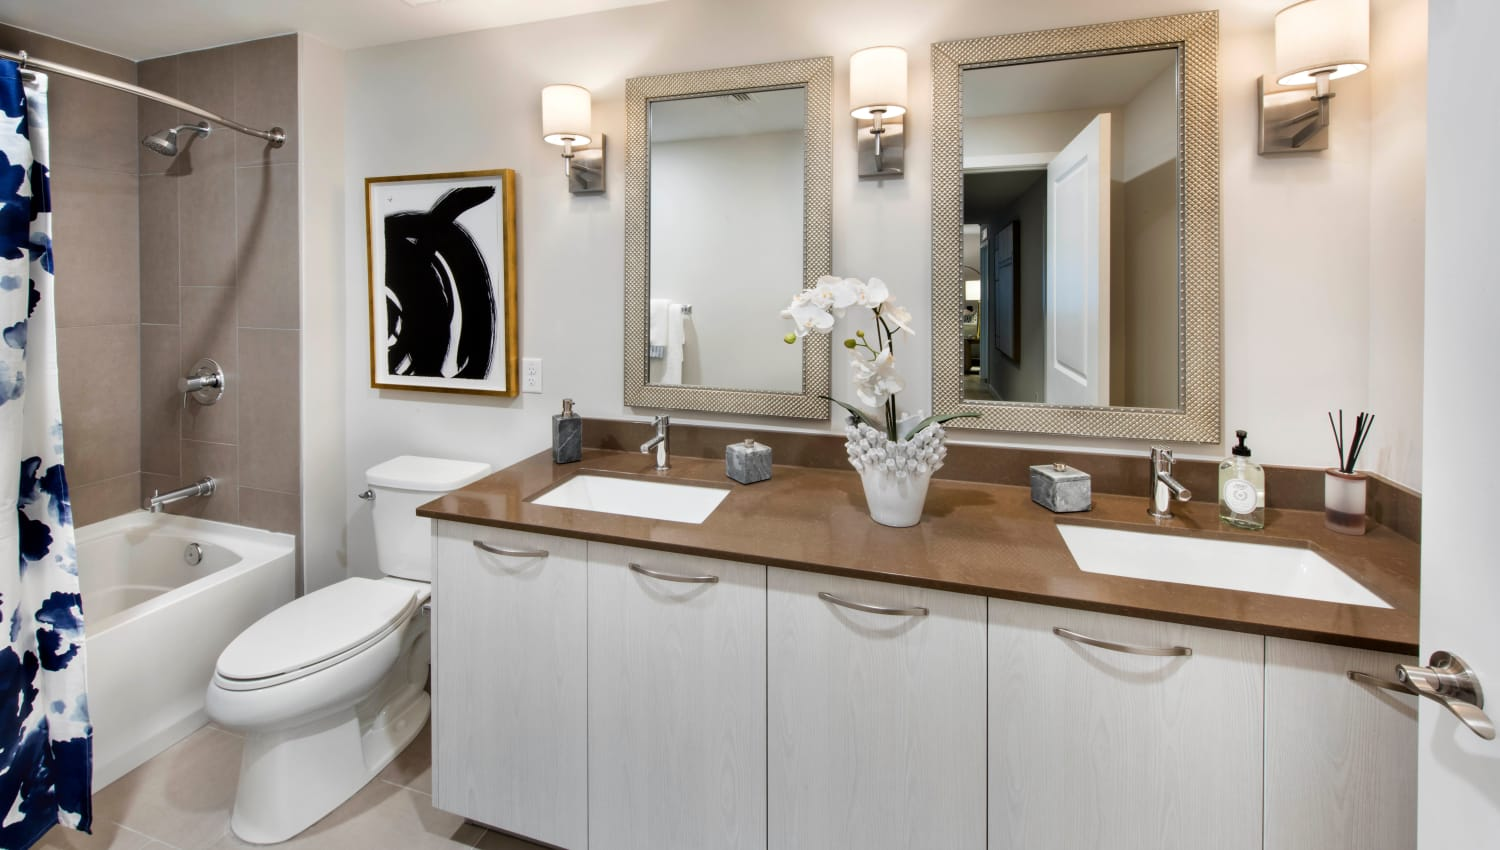 Dual sinks in a model home's bathroom at Olympus Harbour Island in Tampa, Florida